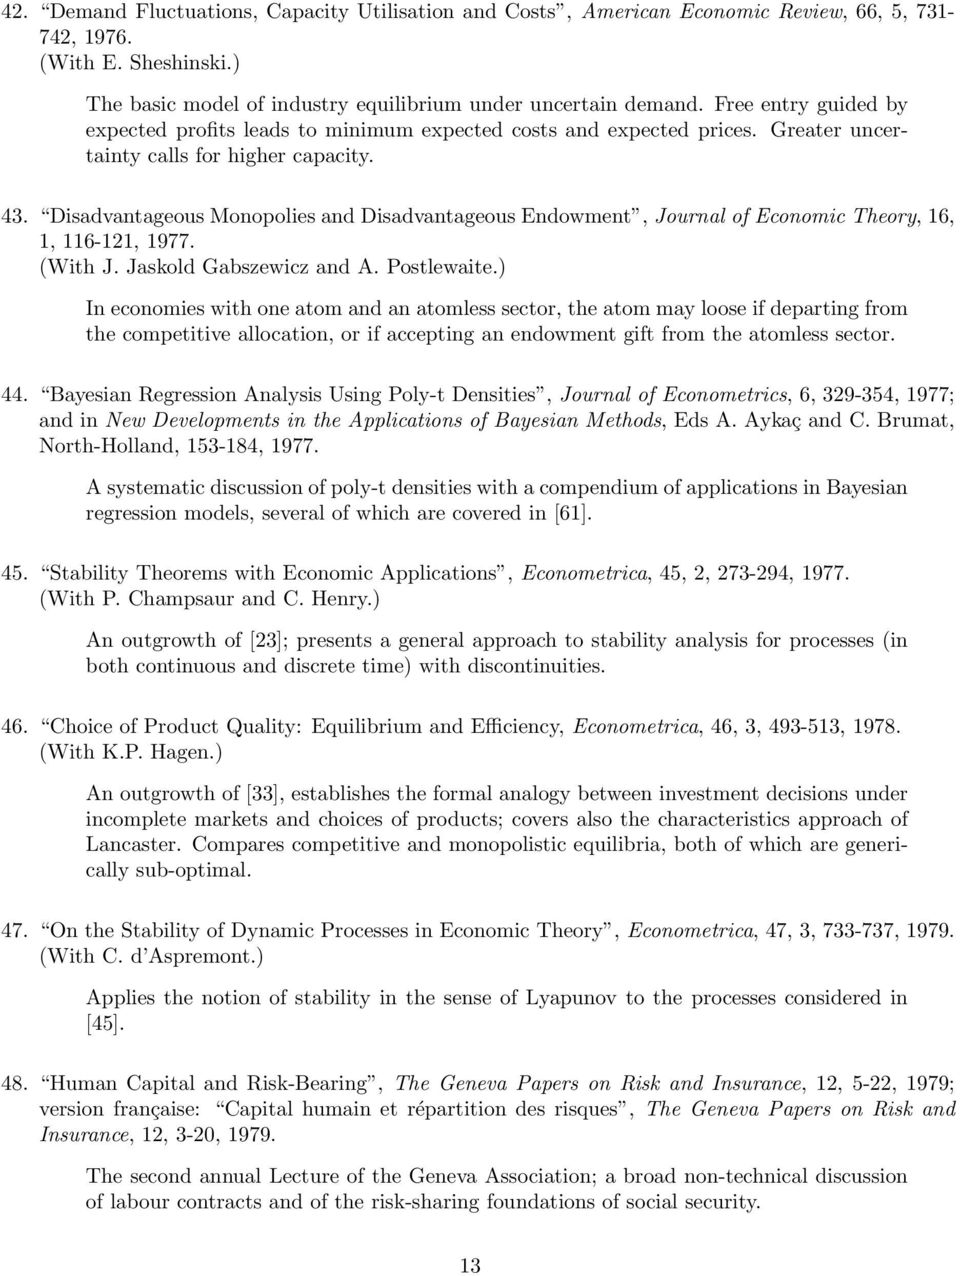 Disadvantageous Monopolies and Disadvantageous Endowment, Journal of Economic Theory, 16, 1, 116-121, 1977. (With J. Jaskold Gabszewicz and A. Postlewaite.